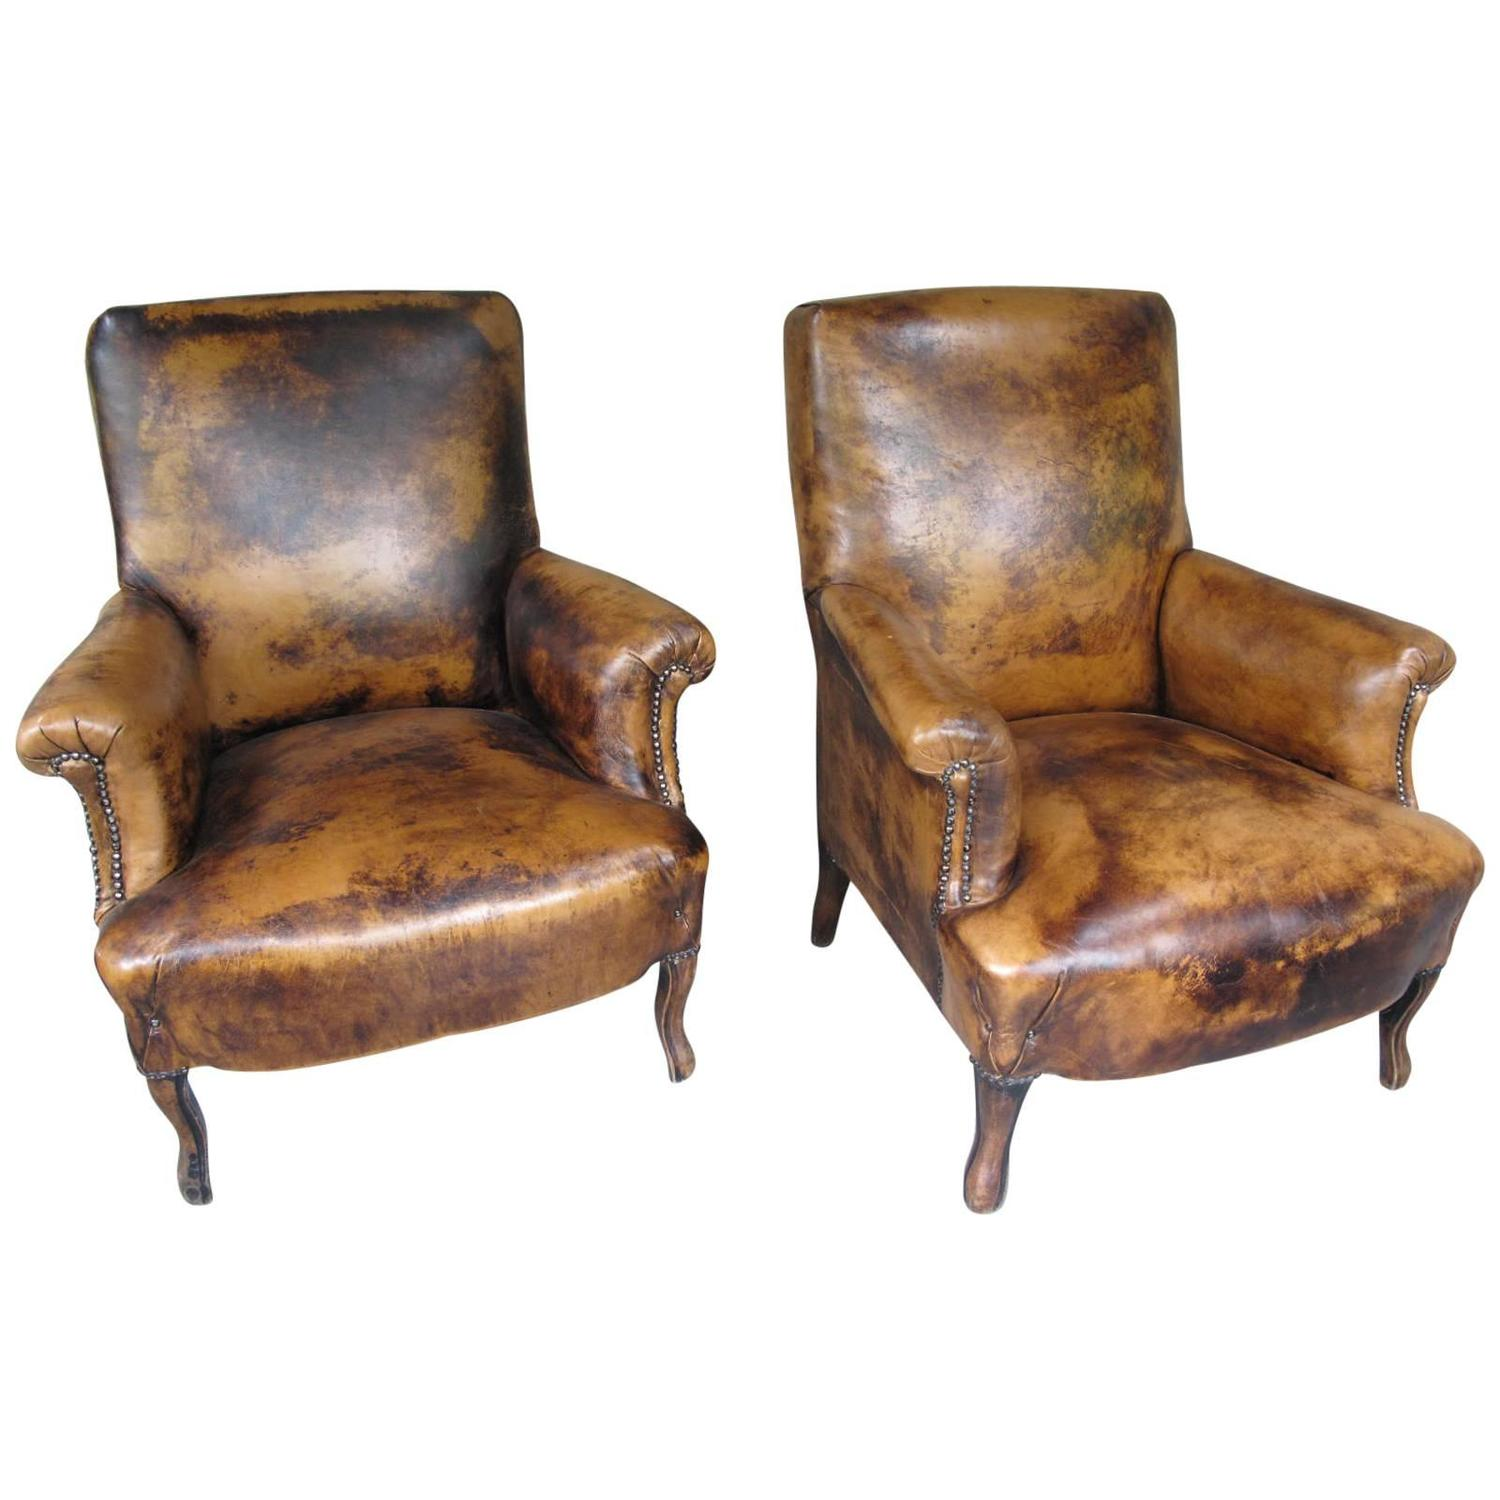 Pair Of Early 20th Century French Leather Chairs At 1stdibs